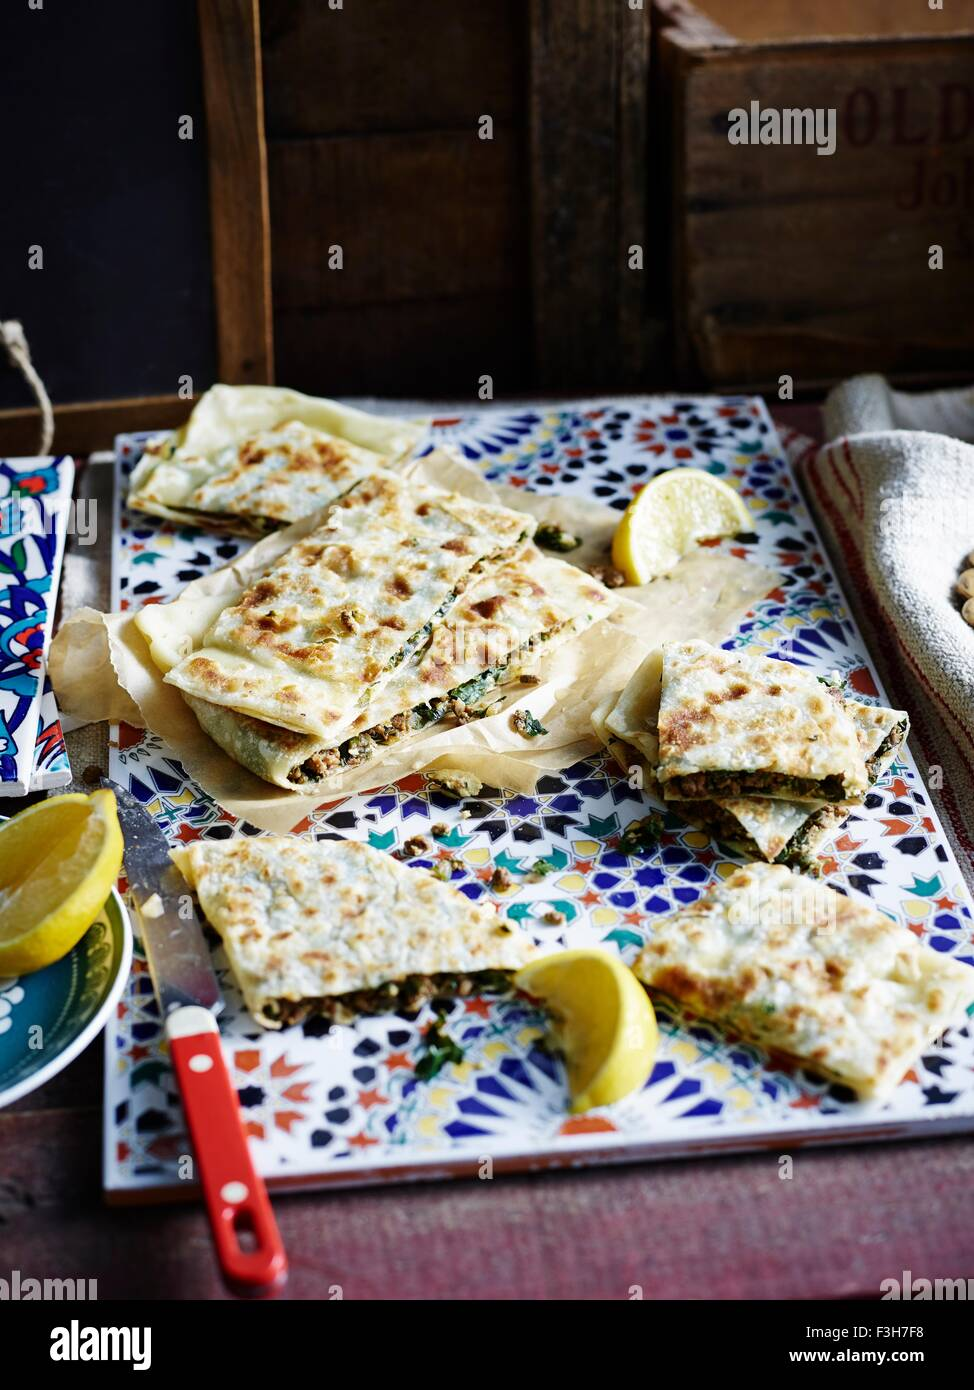 High angle view of lamb, feta and silverbeet gozleme served on ceramic tile - Stock Image